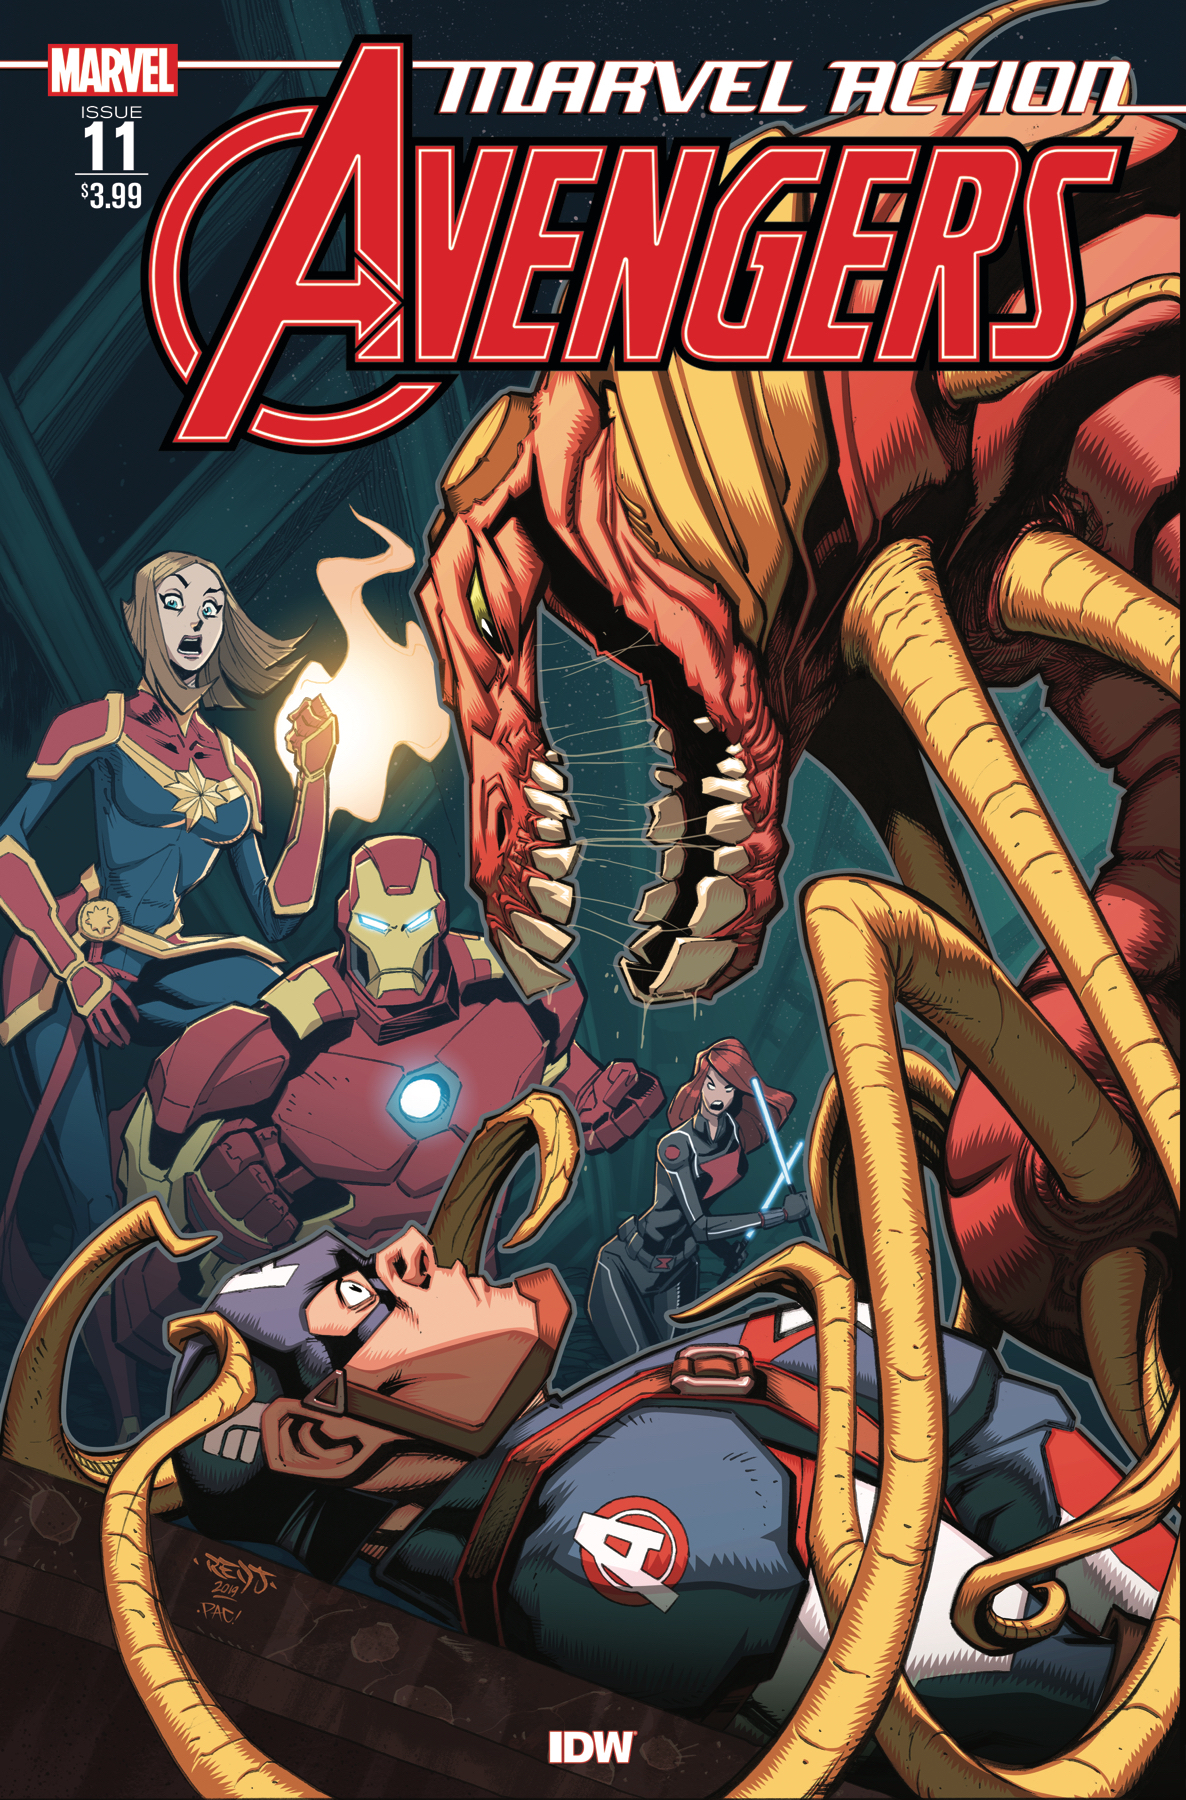 MARVEL ACTION AVENGERS #11 FIORITO